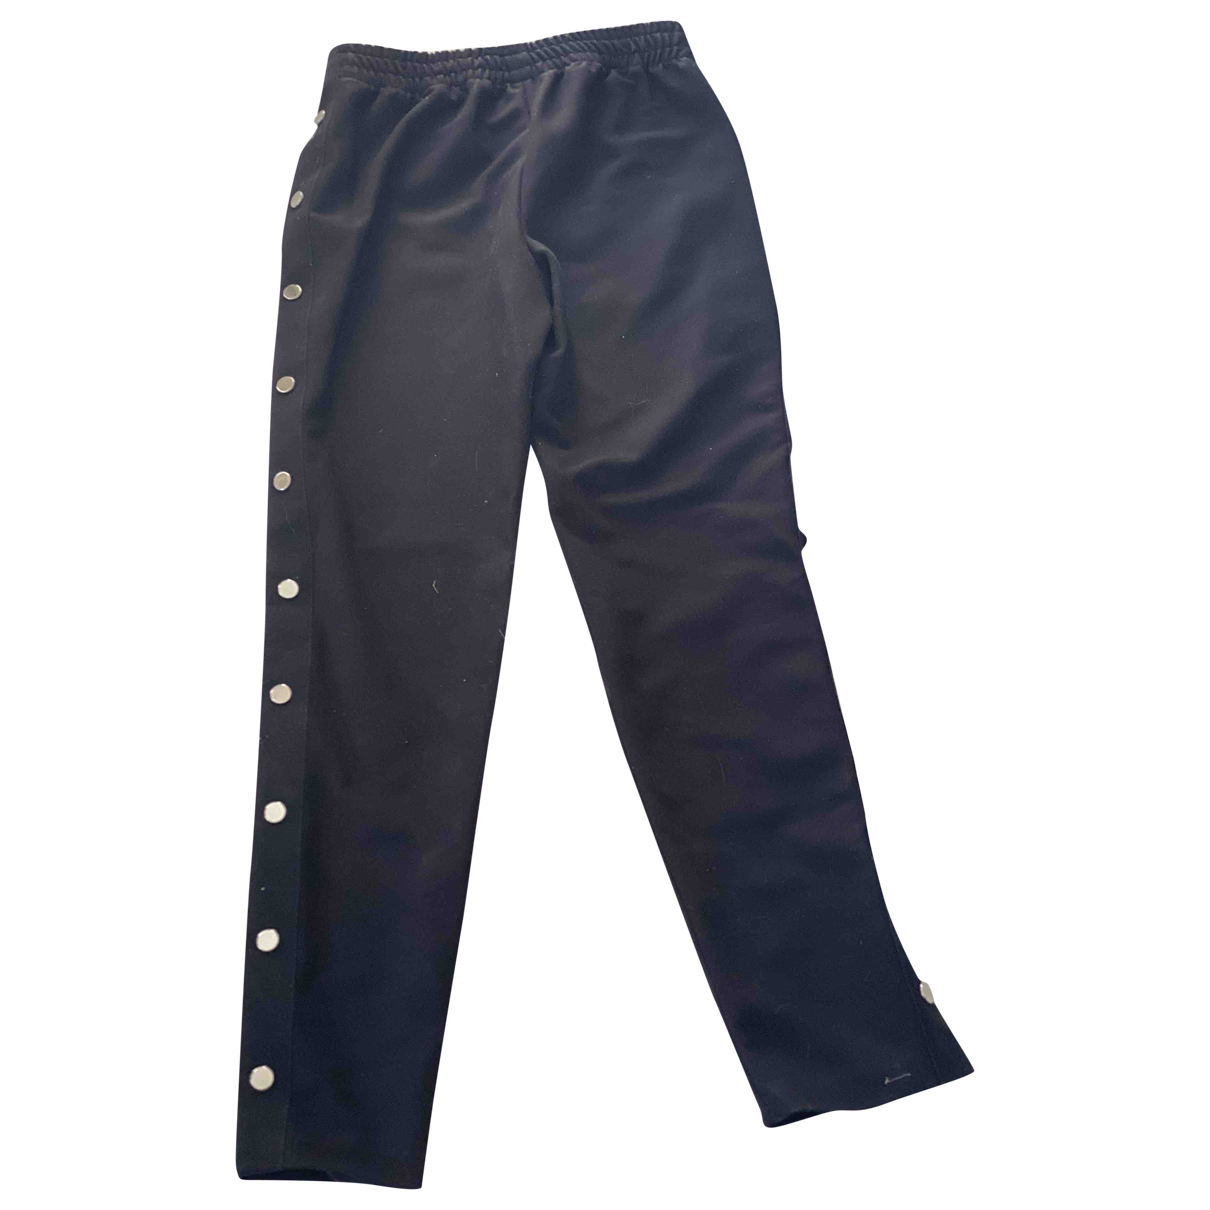 Maje N Black Trousers for Women 1 0-5